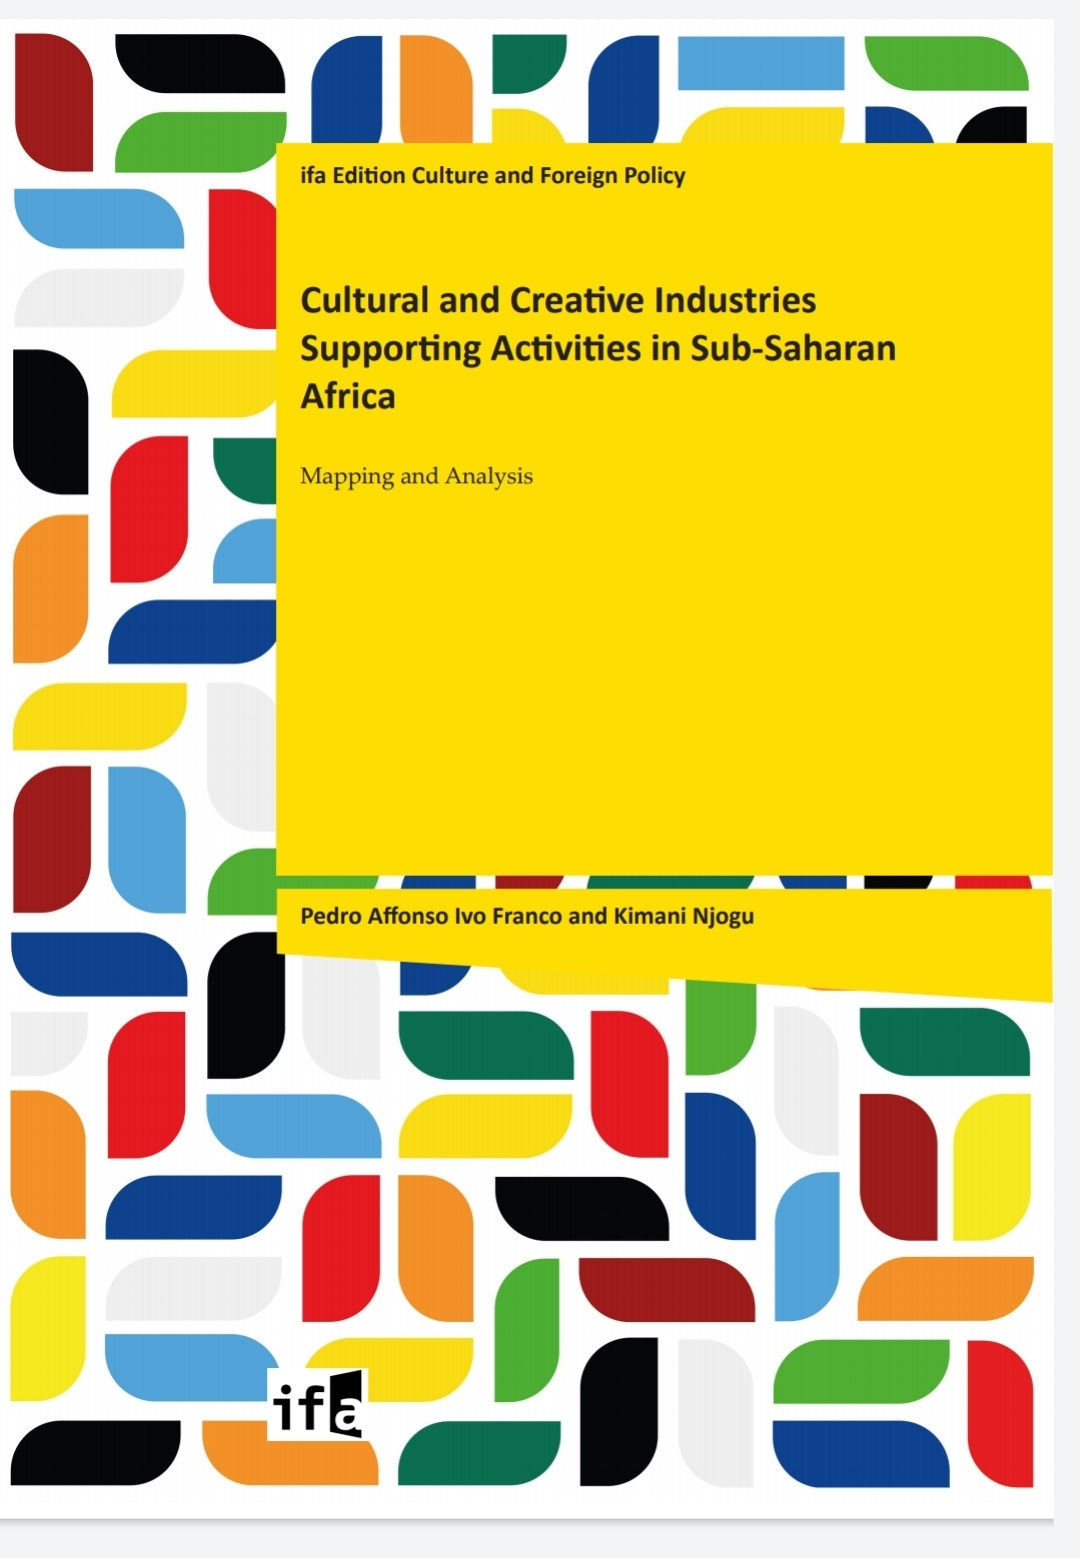 Cultural and Creative Industries Supporting Activities in Sub-Saharan Africa